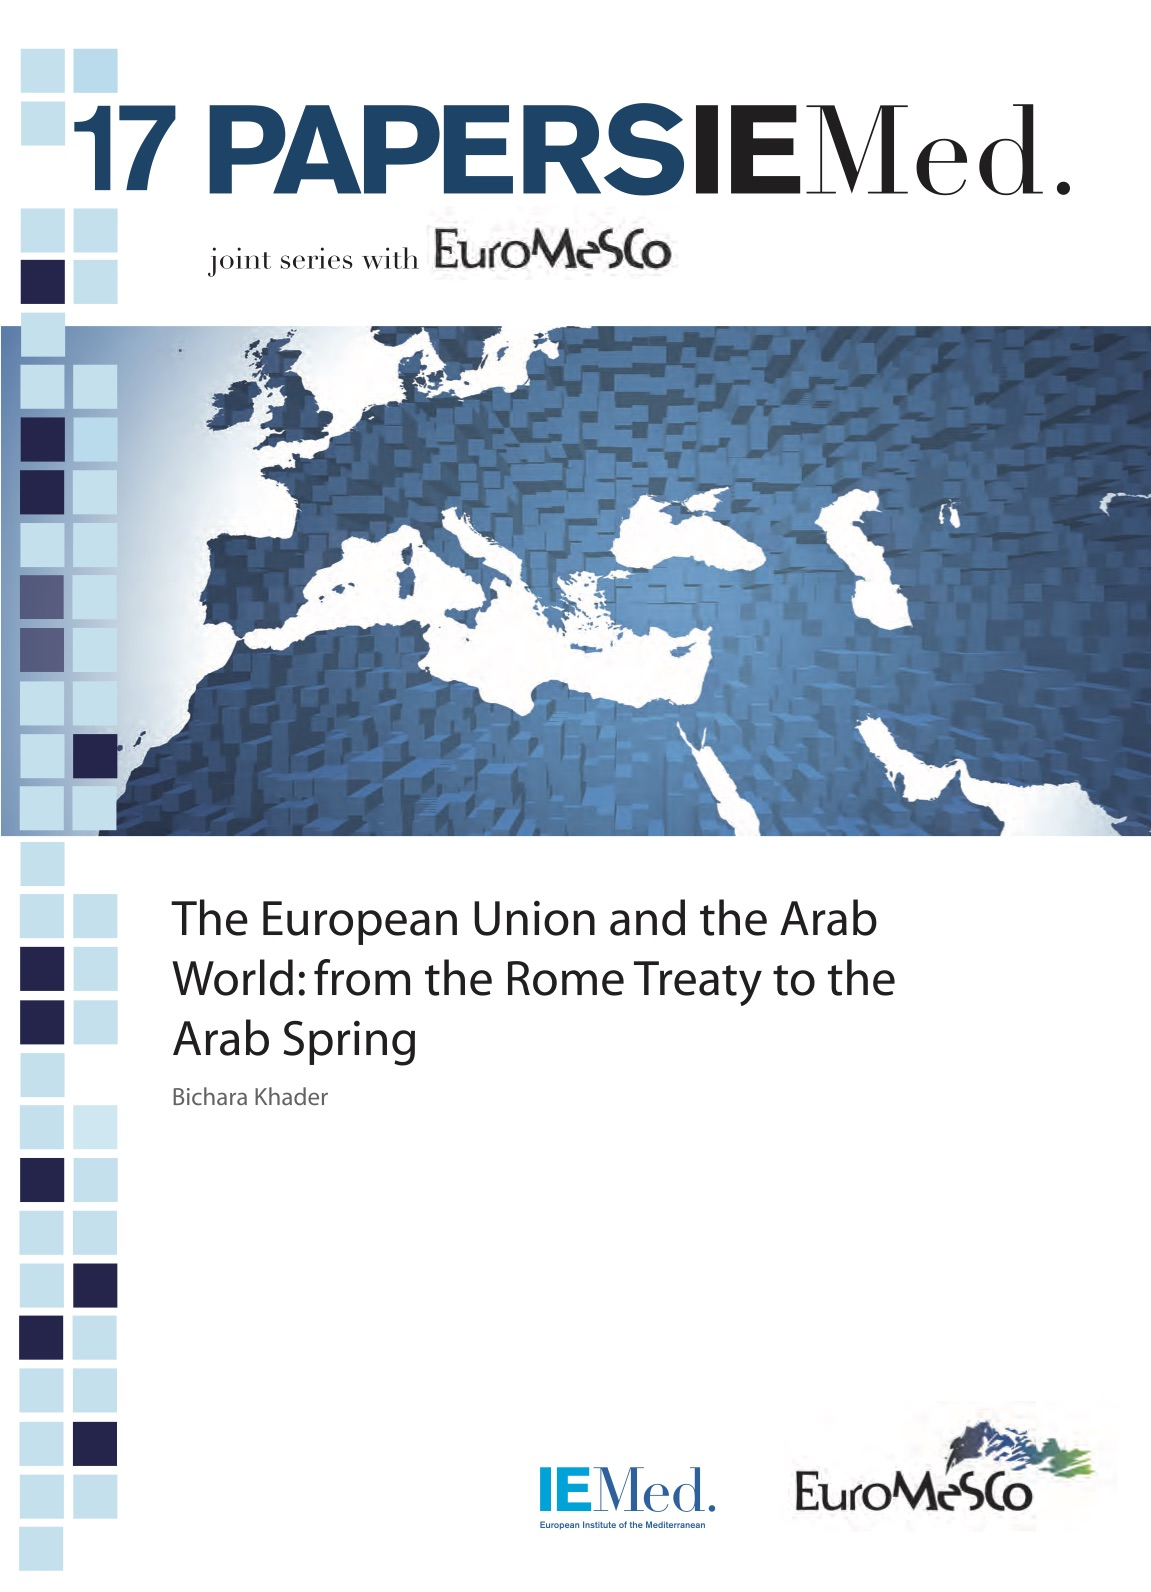 After the Arab Spring: The Uphill Struggle for Democracy